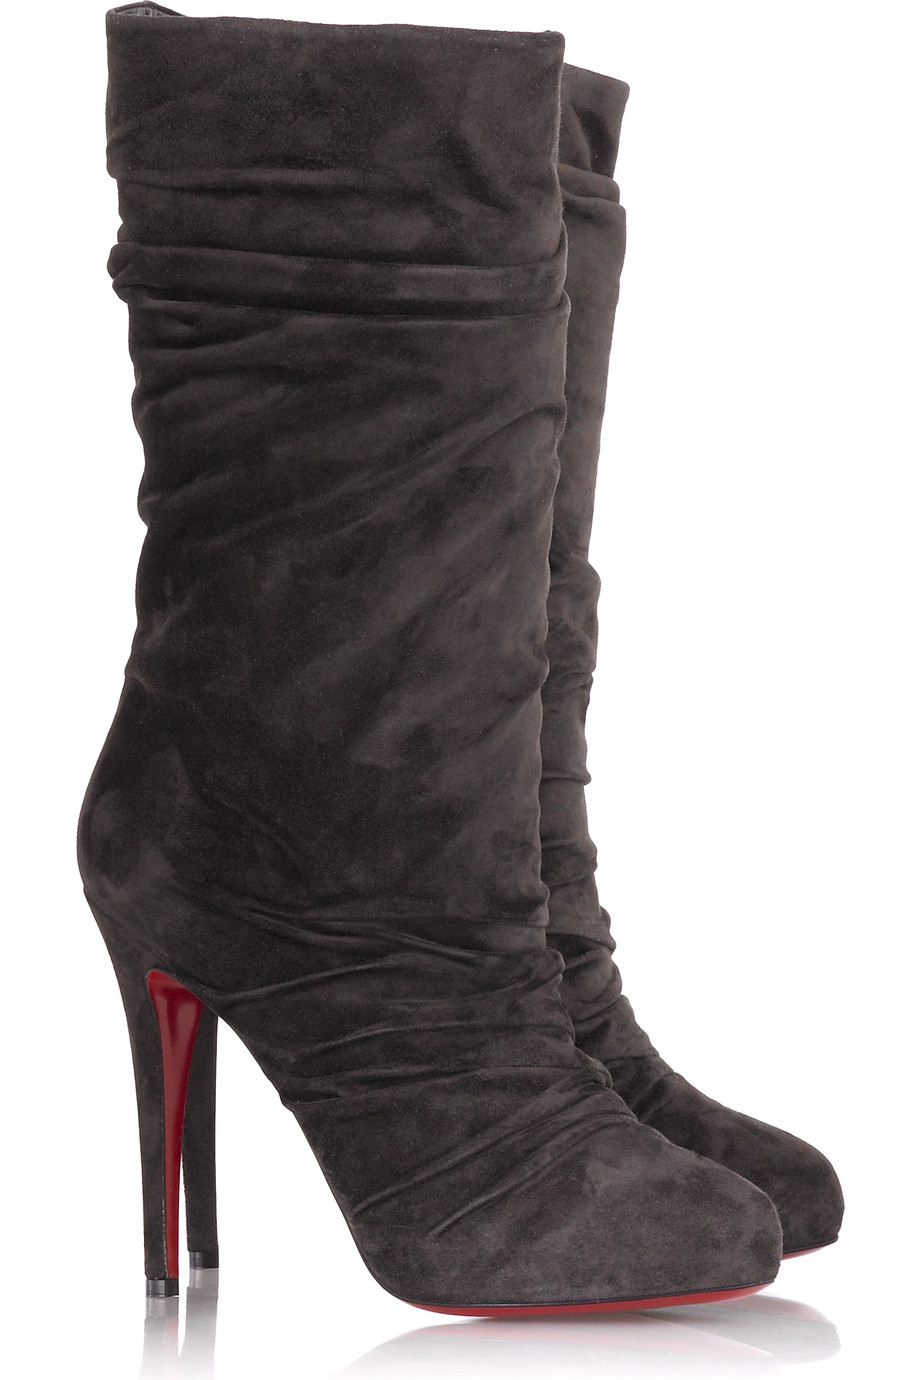 Christian Louboutin Suede Piros Mid Calf Boots Replica Louboutin Shoes For Sale